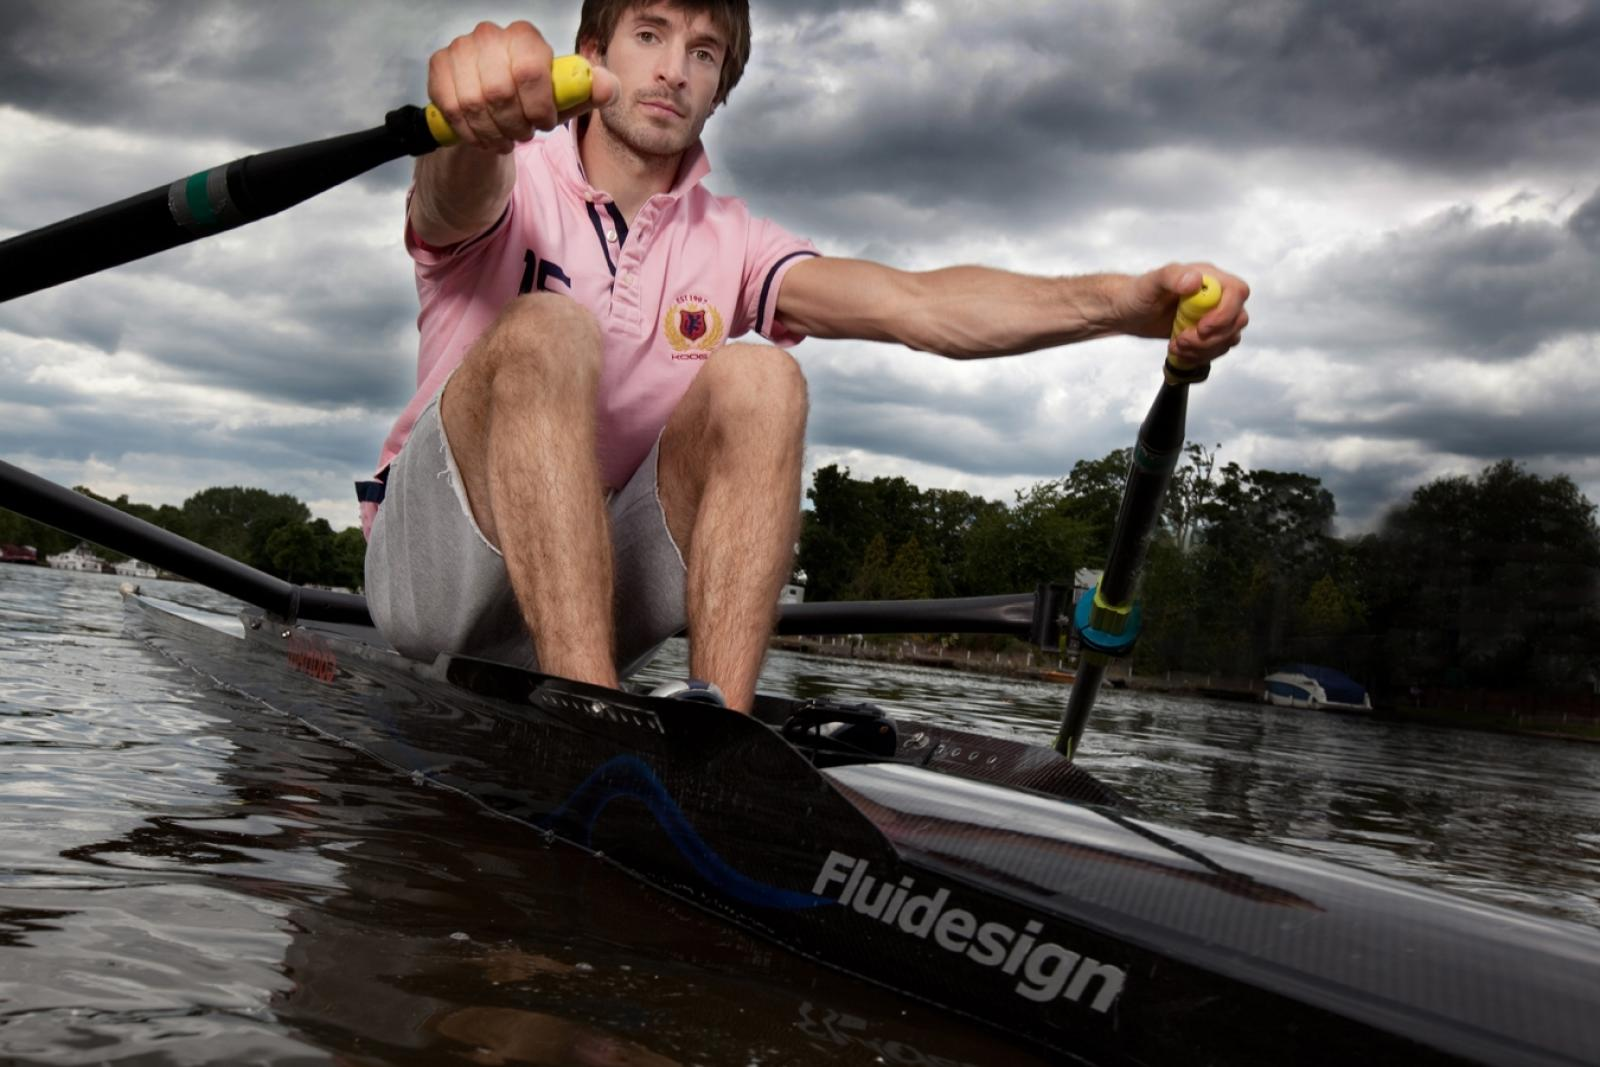 On the Thames Olympic Rower